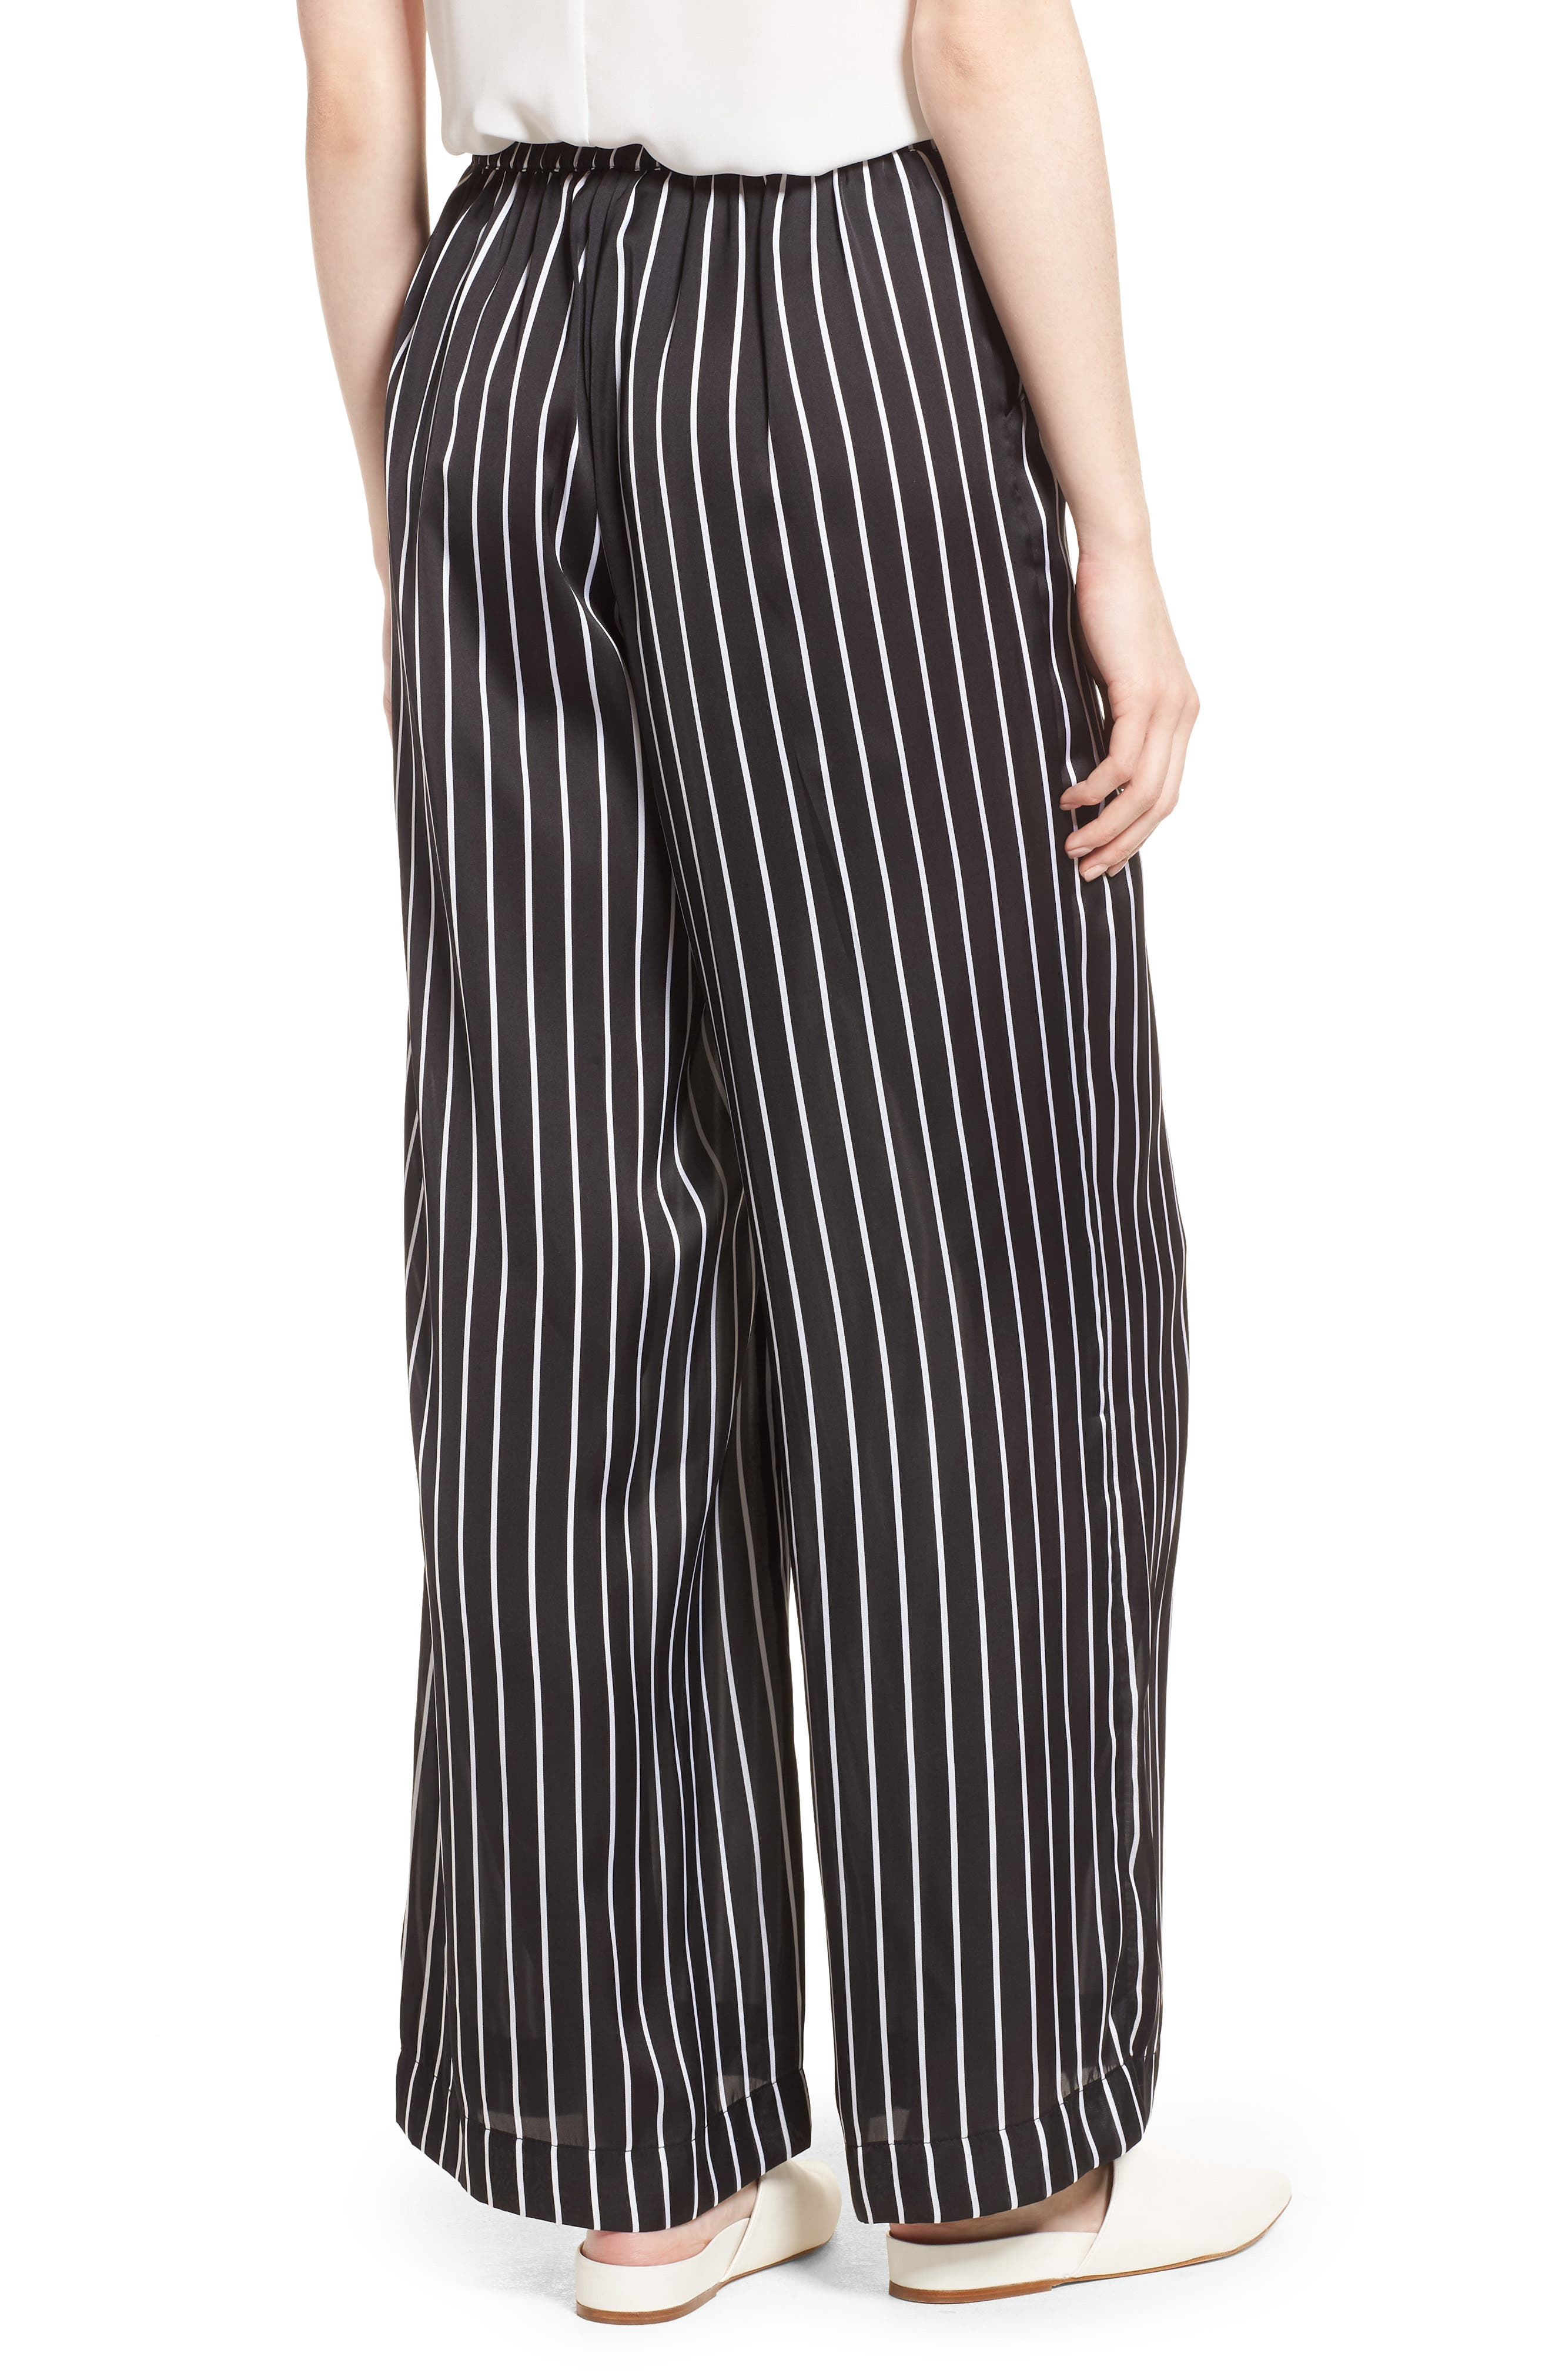 Kenneth Cole Wide Leg Pants,                             Alternate thumbnail 2, color,                             STREET STRIPE BLACK